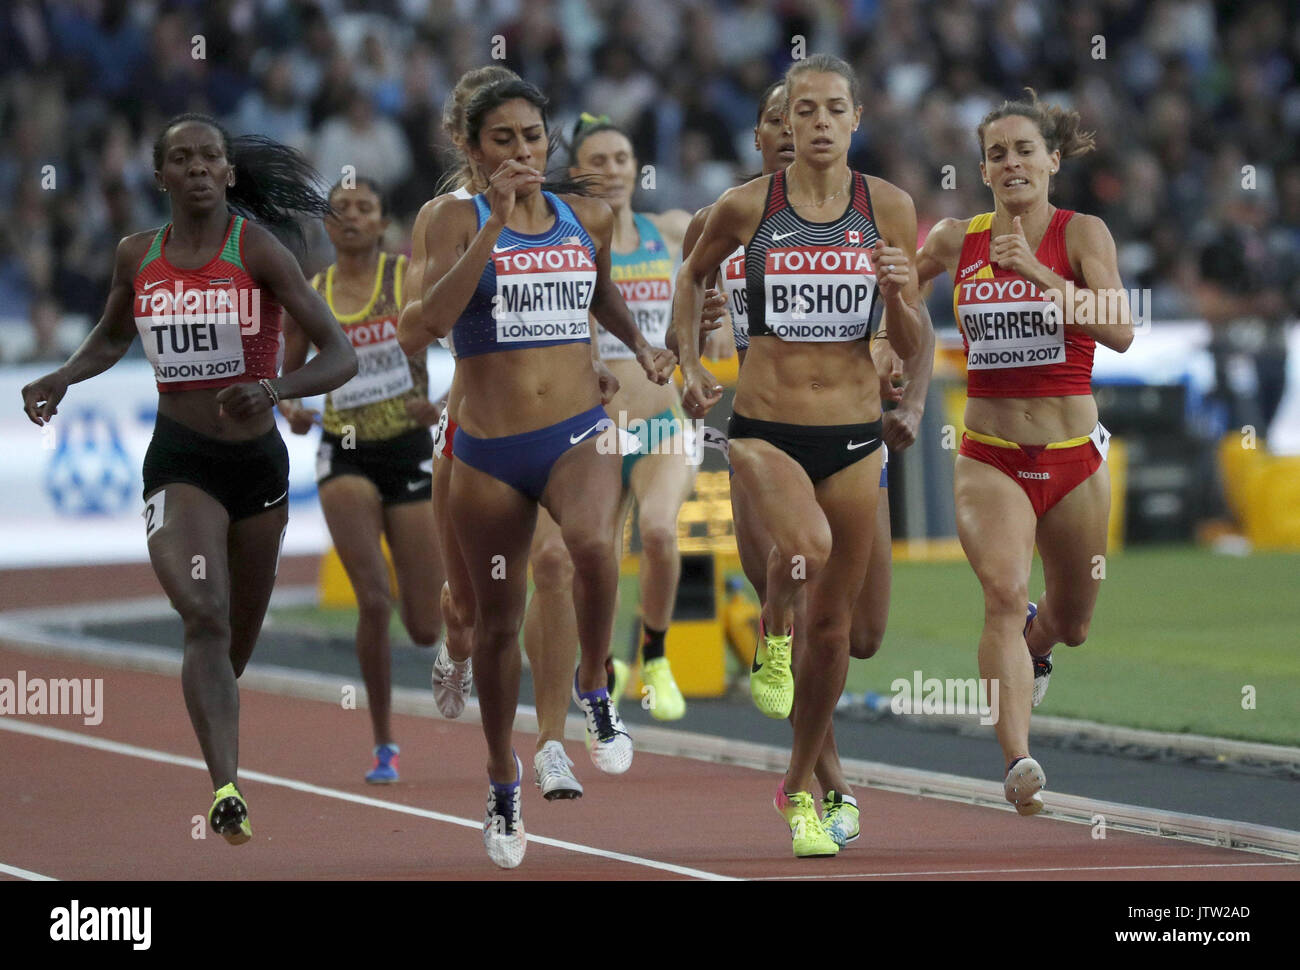 London, UK. 10th August, 2017. Spain's Esther Guerrero (R) competes in the women's 800m heats at the London 2017 Stock Photo